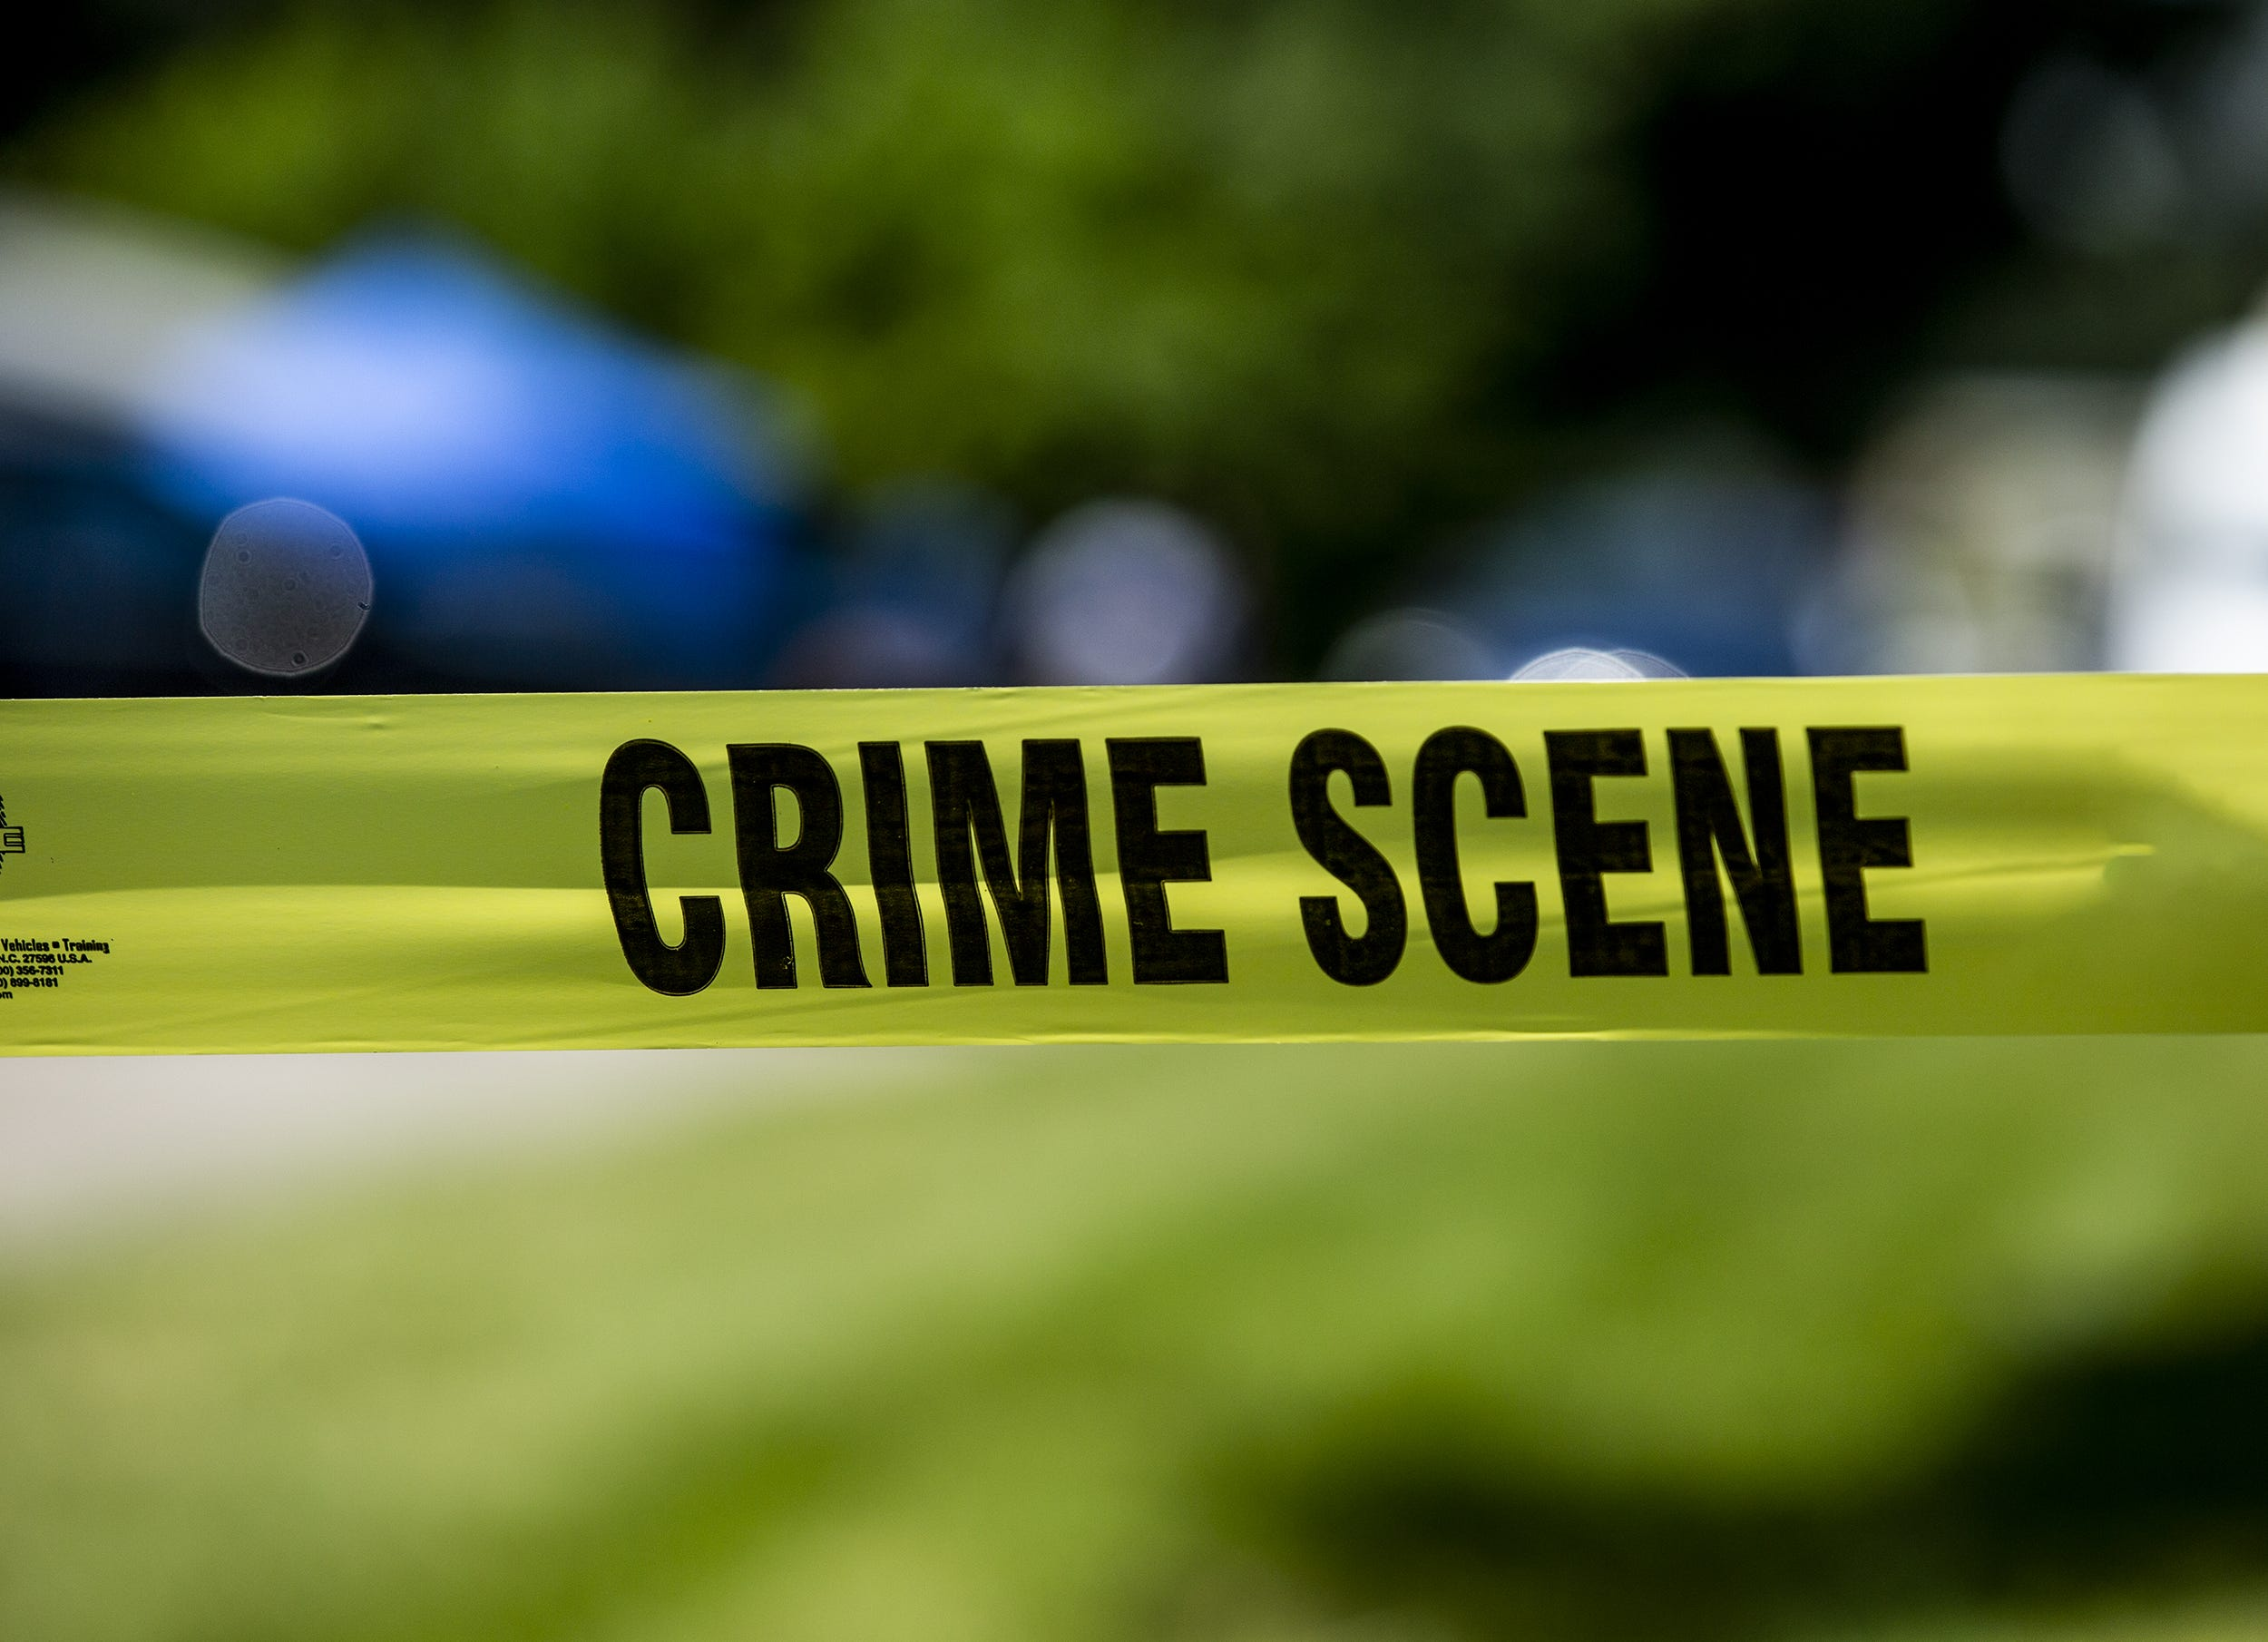 Kentucky man traveled to Illinois with dismembered body in suitcases after homicide, police say